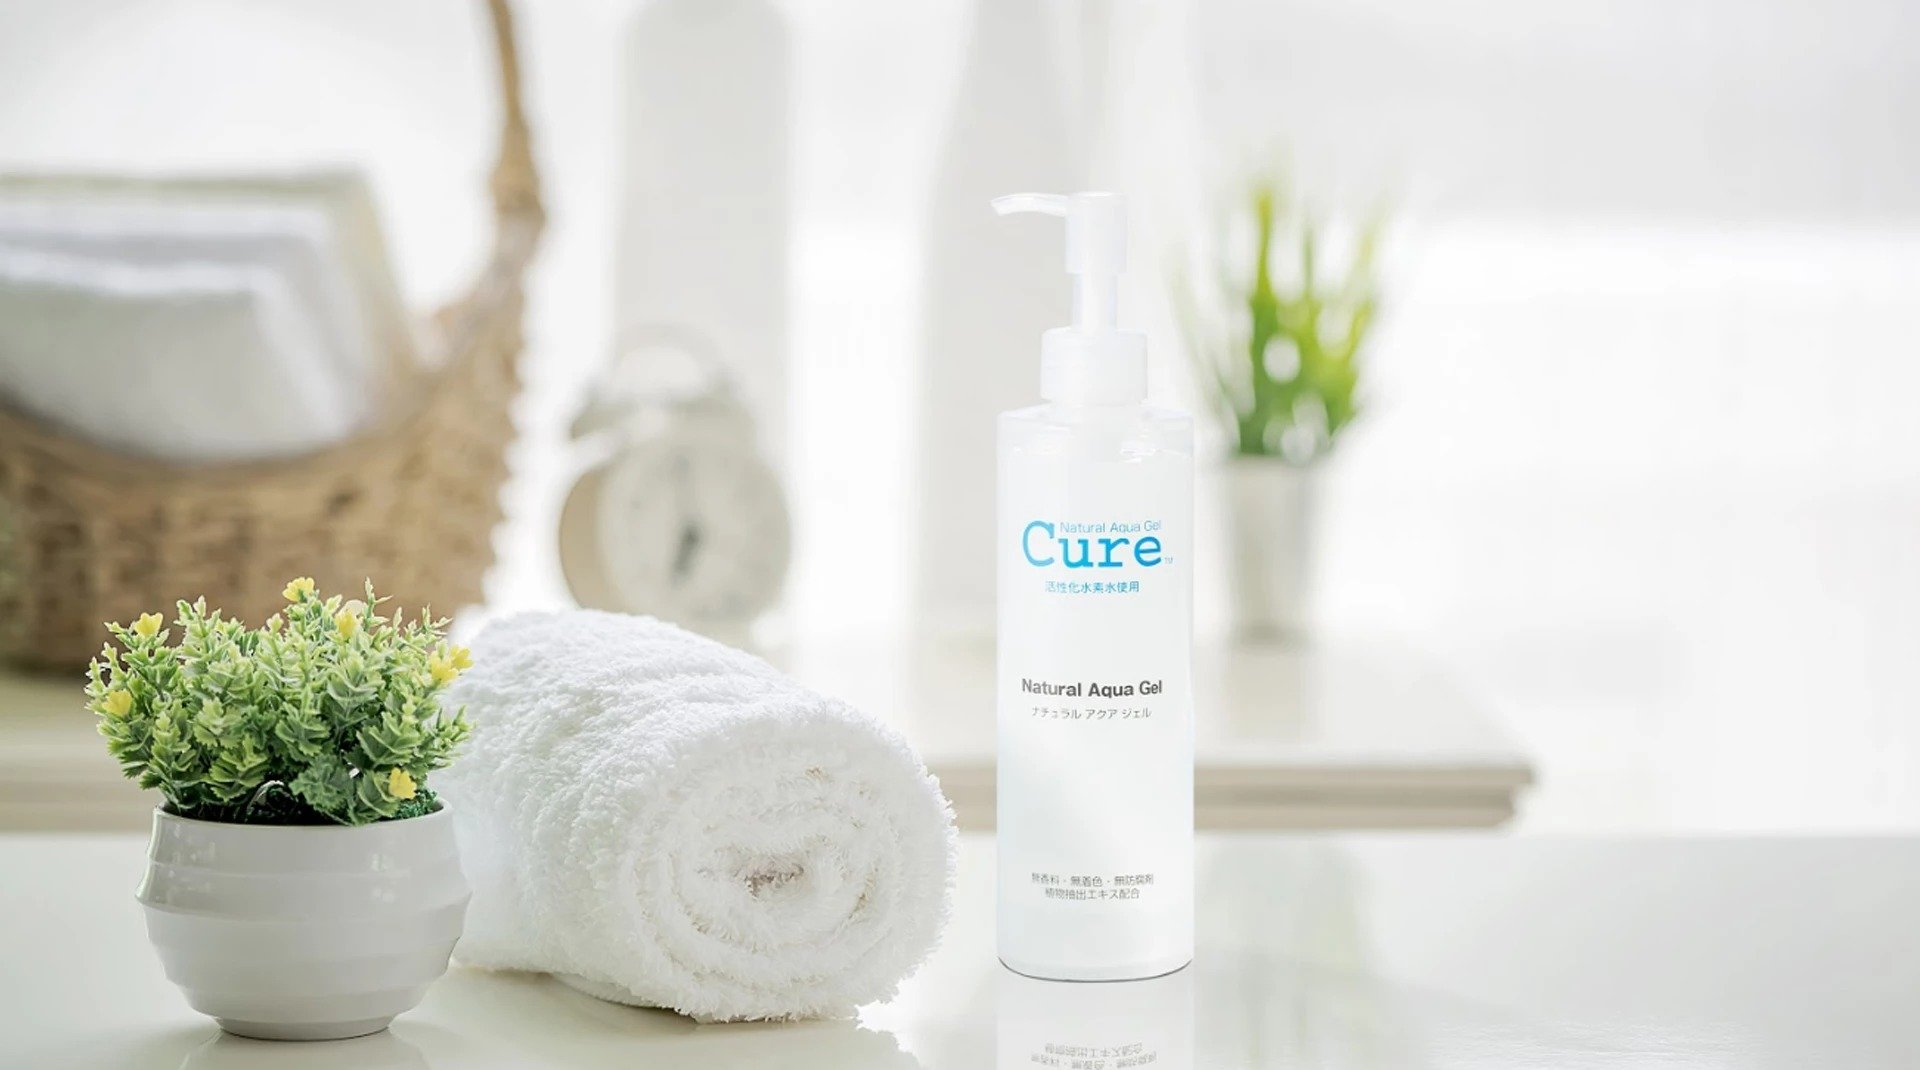 """CURE Natural Aqua Gel. CURE's formulation philosophy is """"Simple, Natural and Clean."""" We human beings are born with Natural Healing Power to keep ourselves beautiful. Thus, there is no need to apply something complicated."""